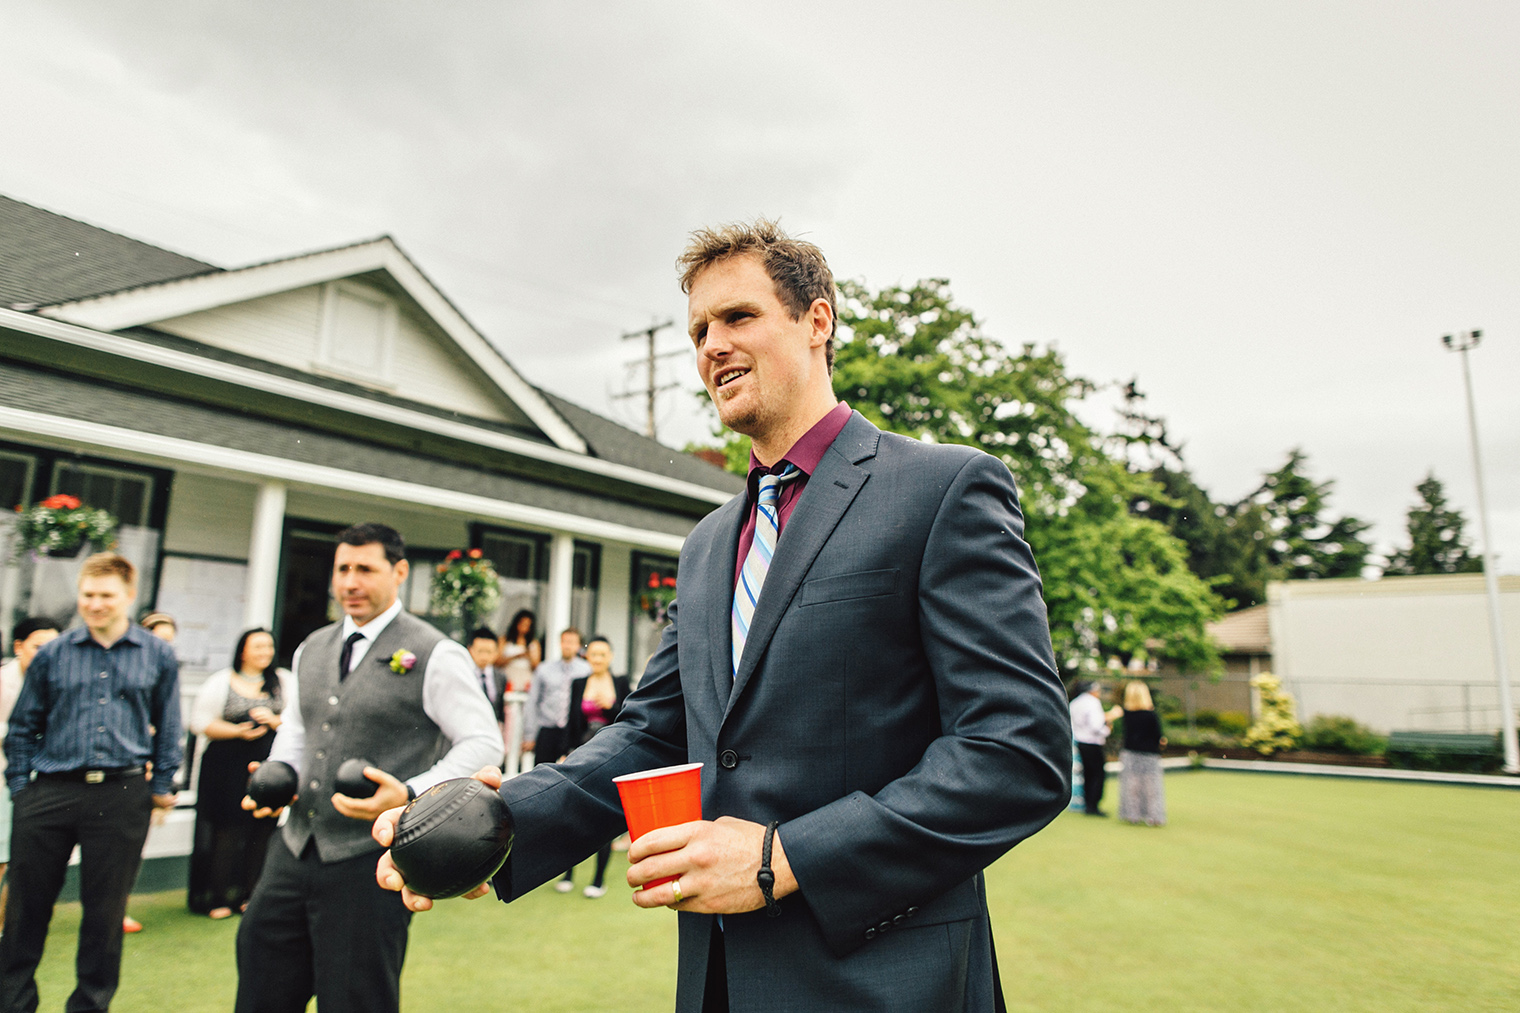 lawn bowling wedding in Victoria BC